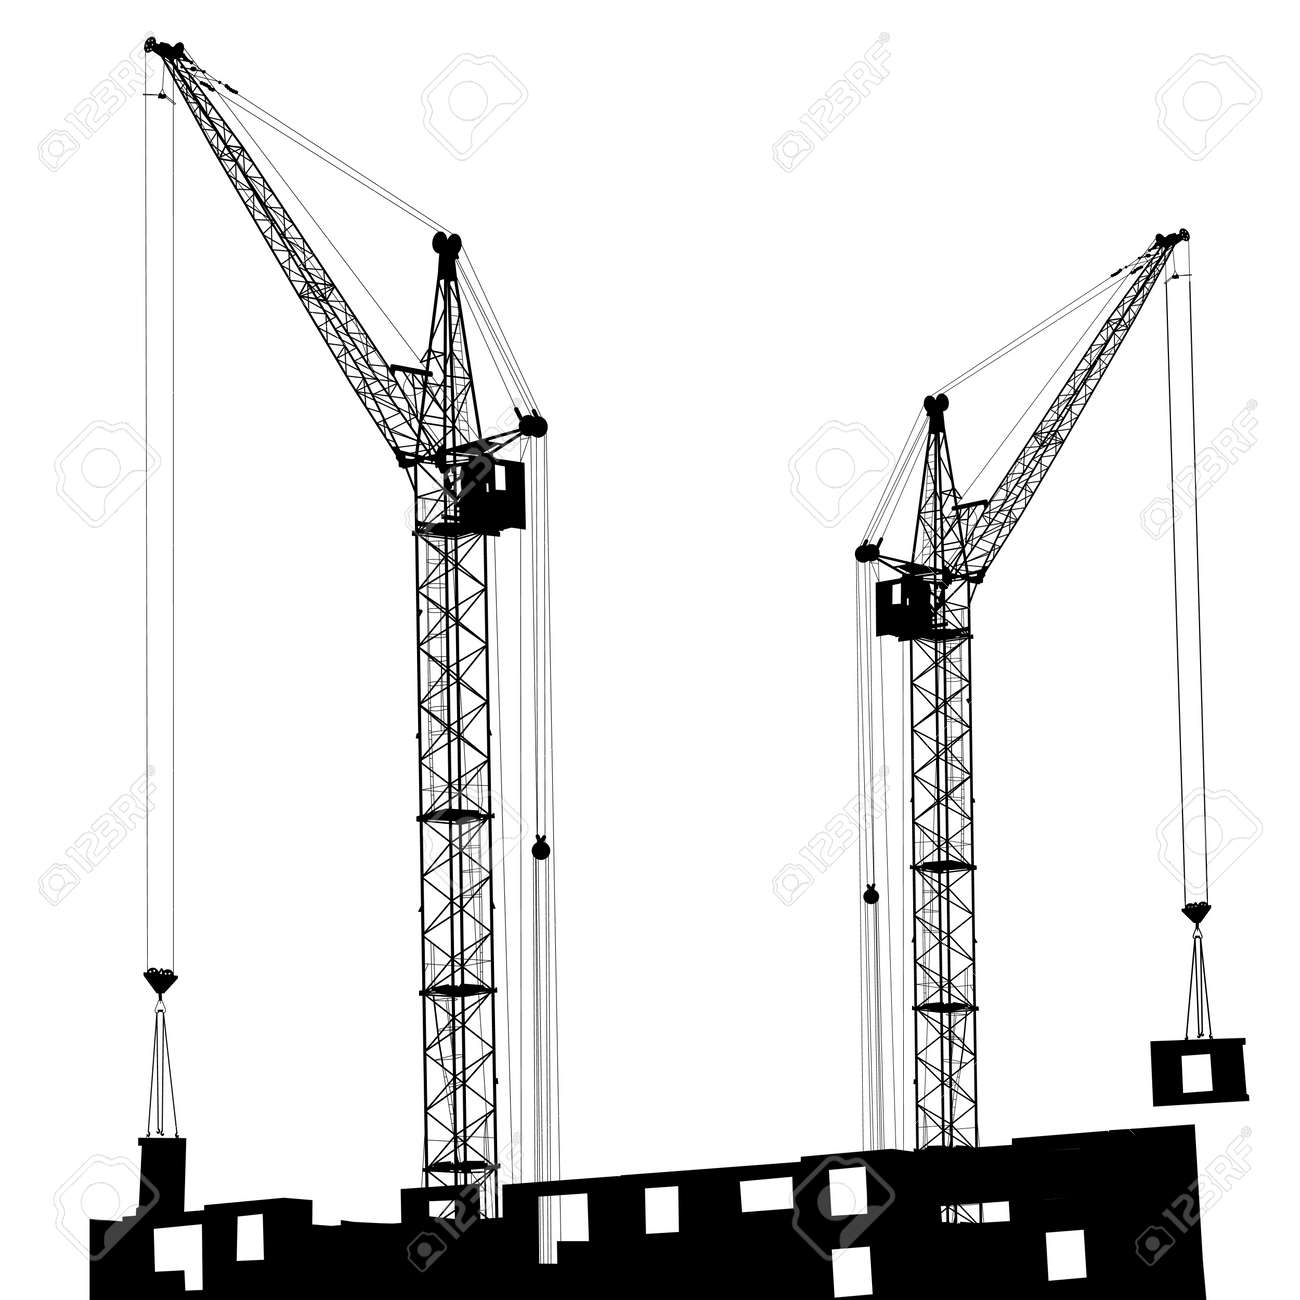 Silhouette of two cranes working on the building Stock Vector - 14101666